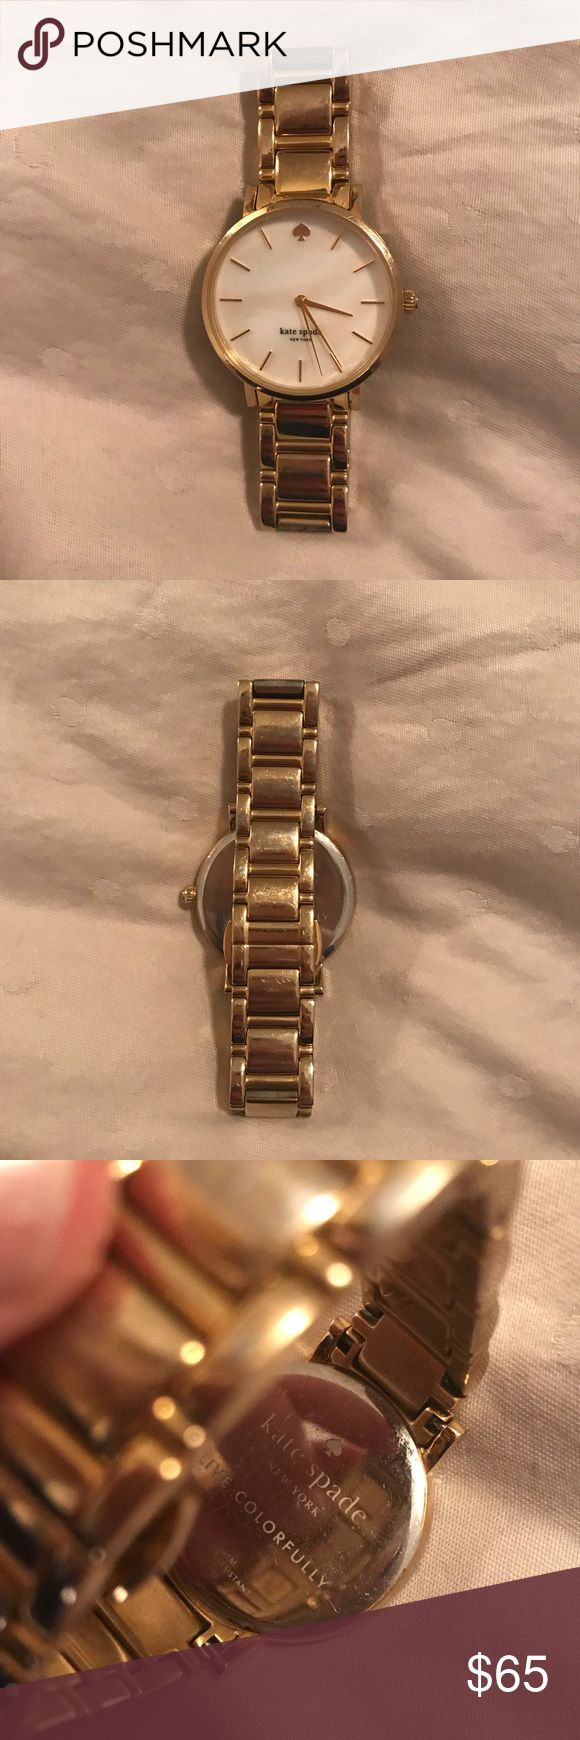 Kate Spade gold watch kate spade gold watch with pearl face. no noticeable signs of wear. excellent condition! kate spade Accessories Watches